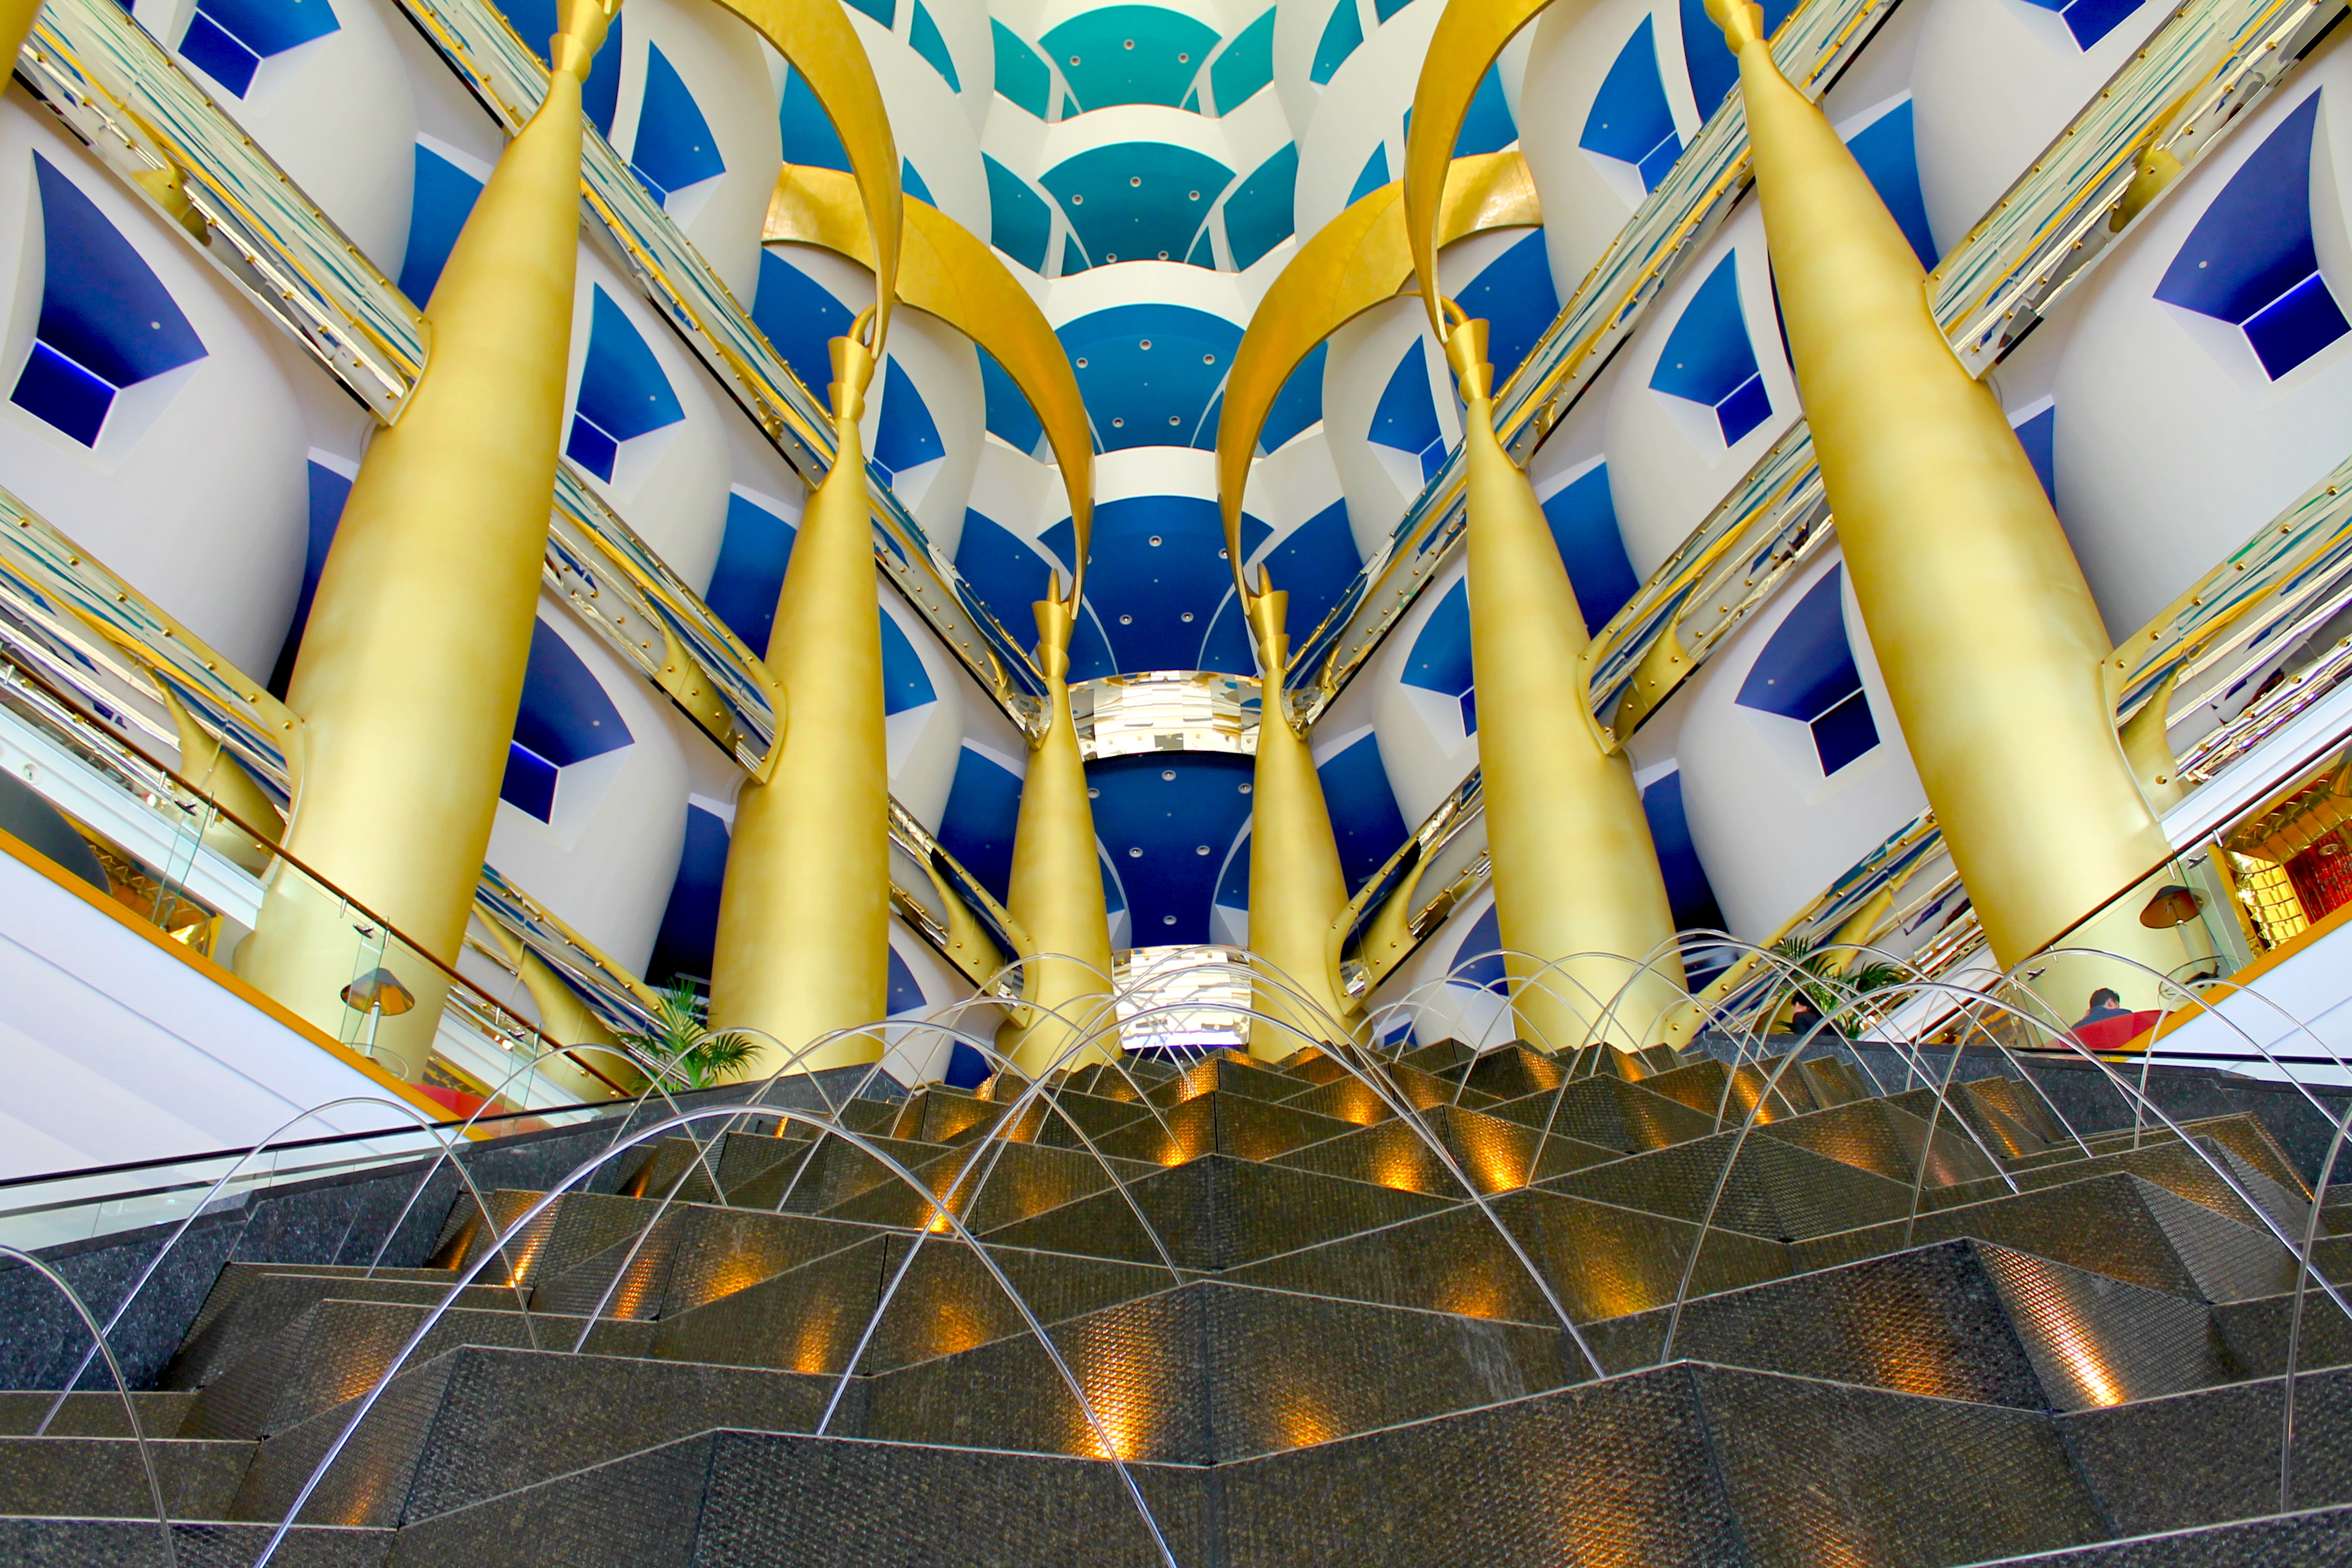 burj-al-arab-dubai-lustforthesublime